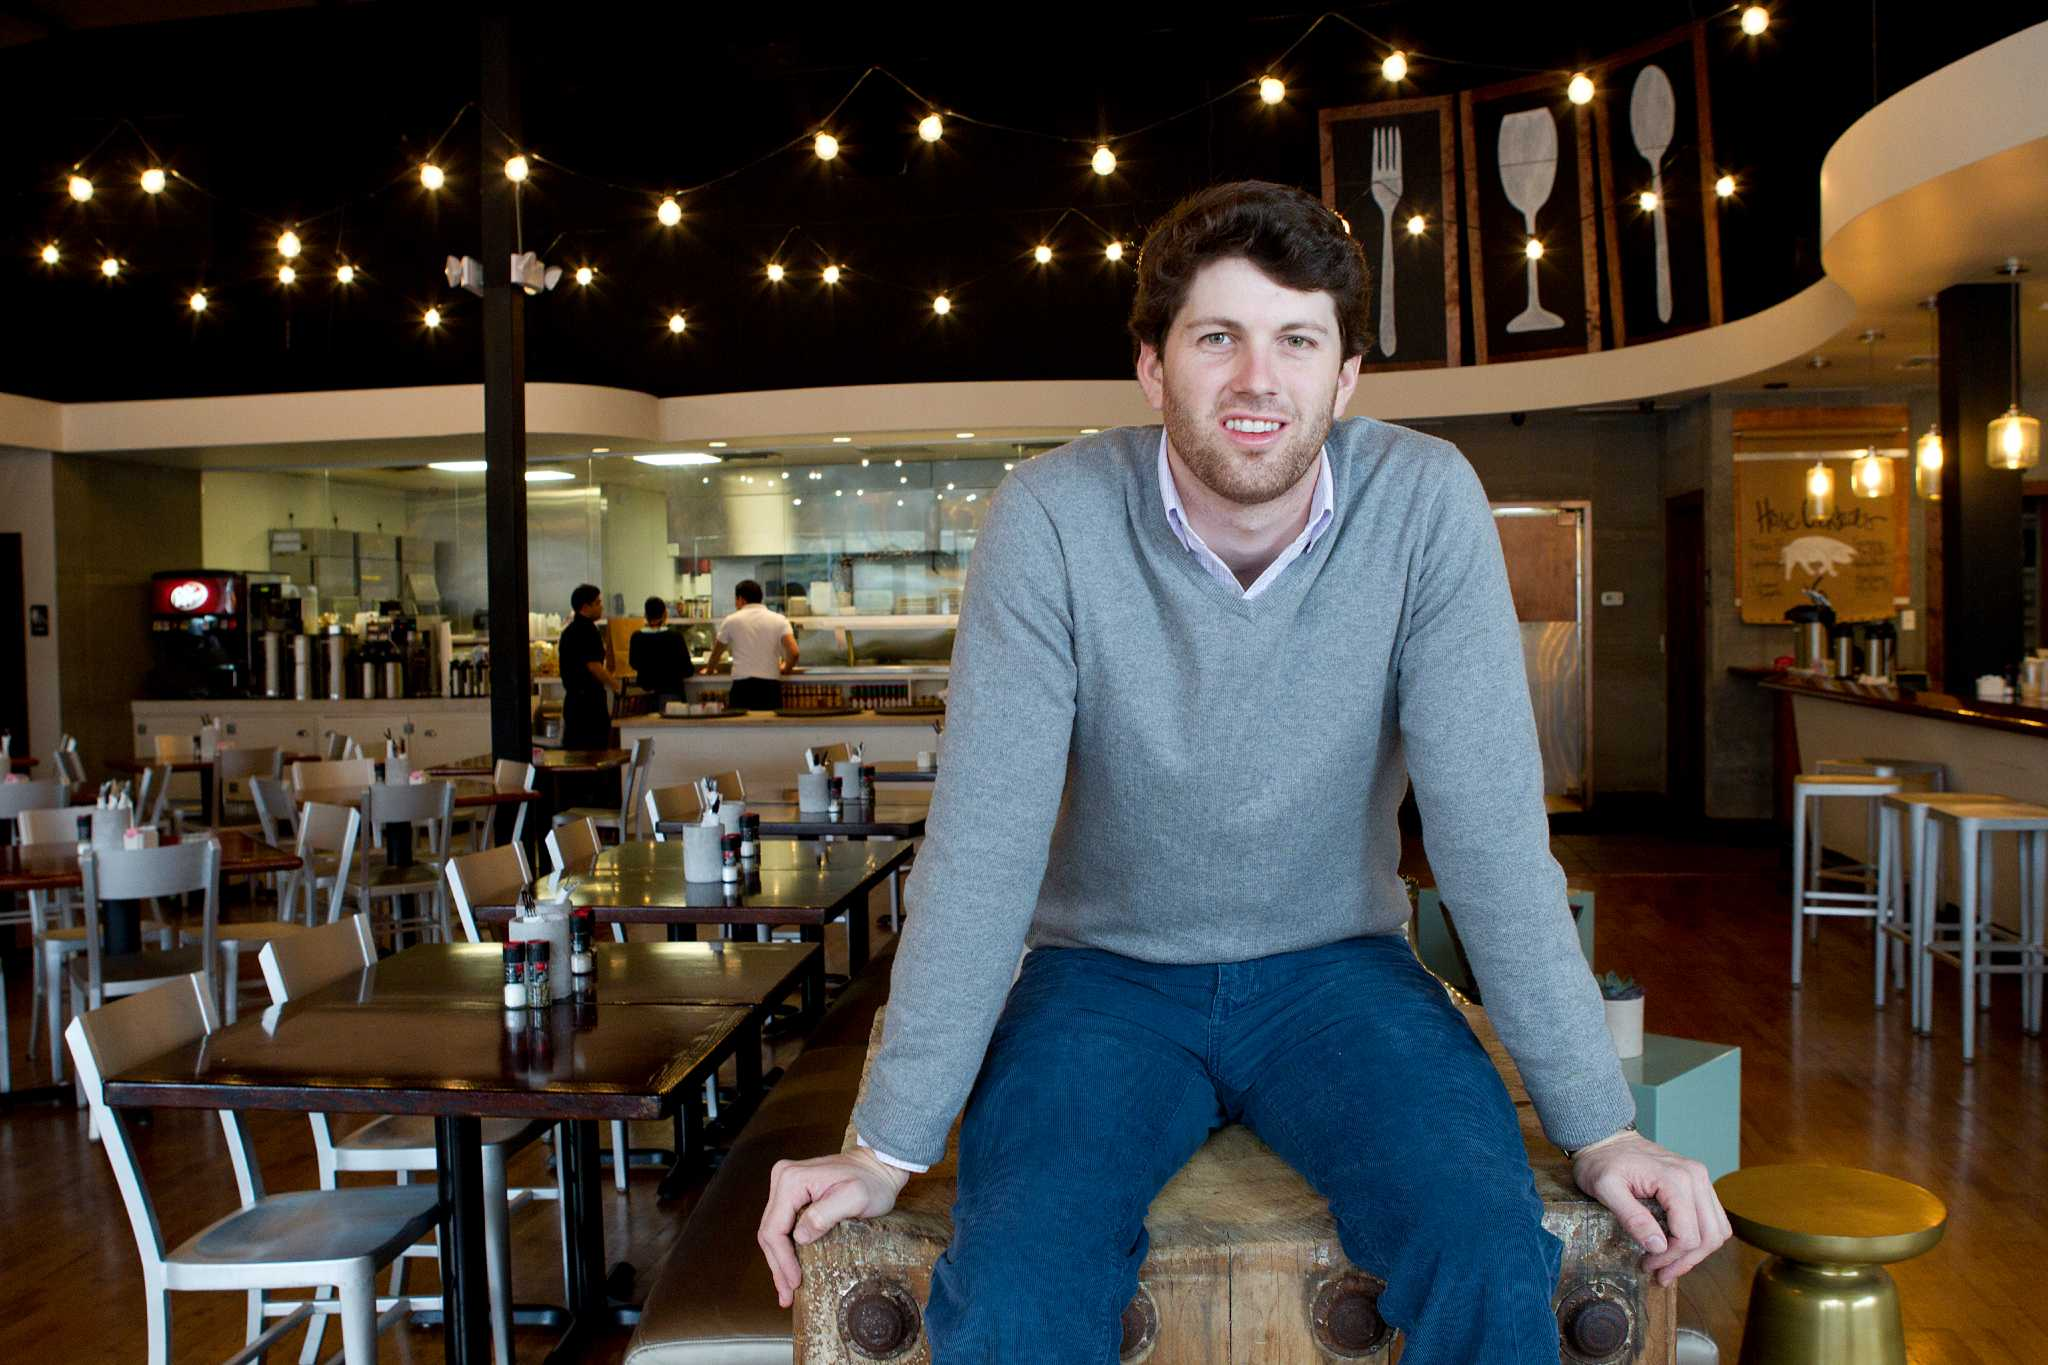 Nick Adair feels the call of the kitchen - HoustonChronicle.com